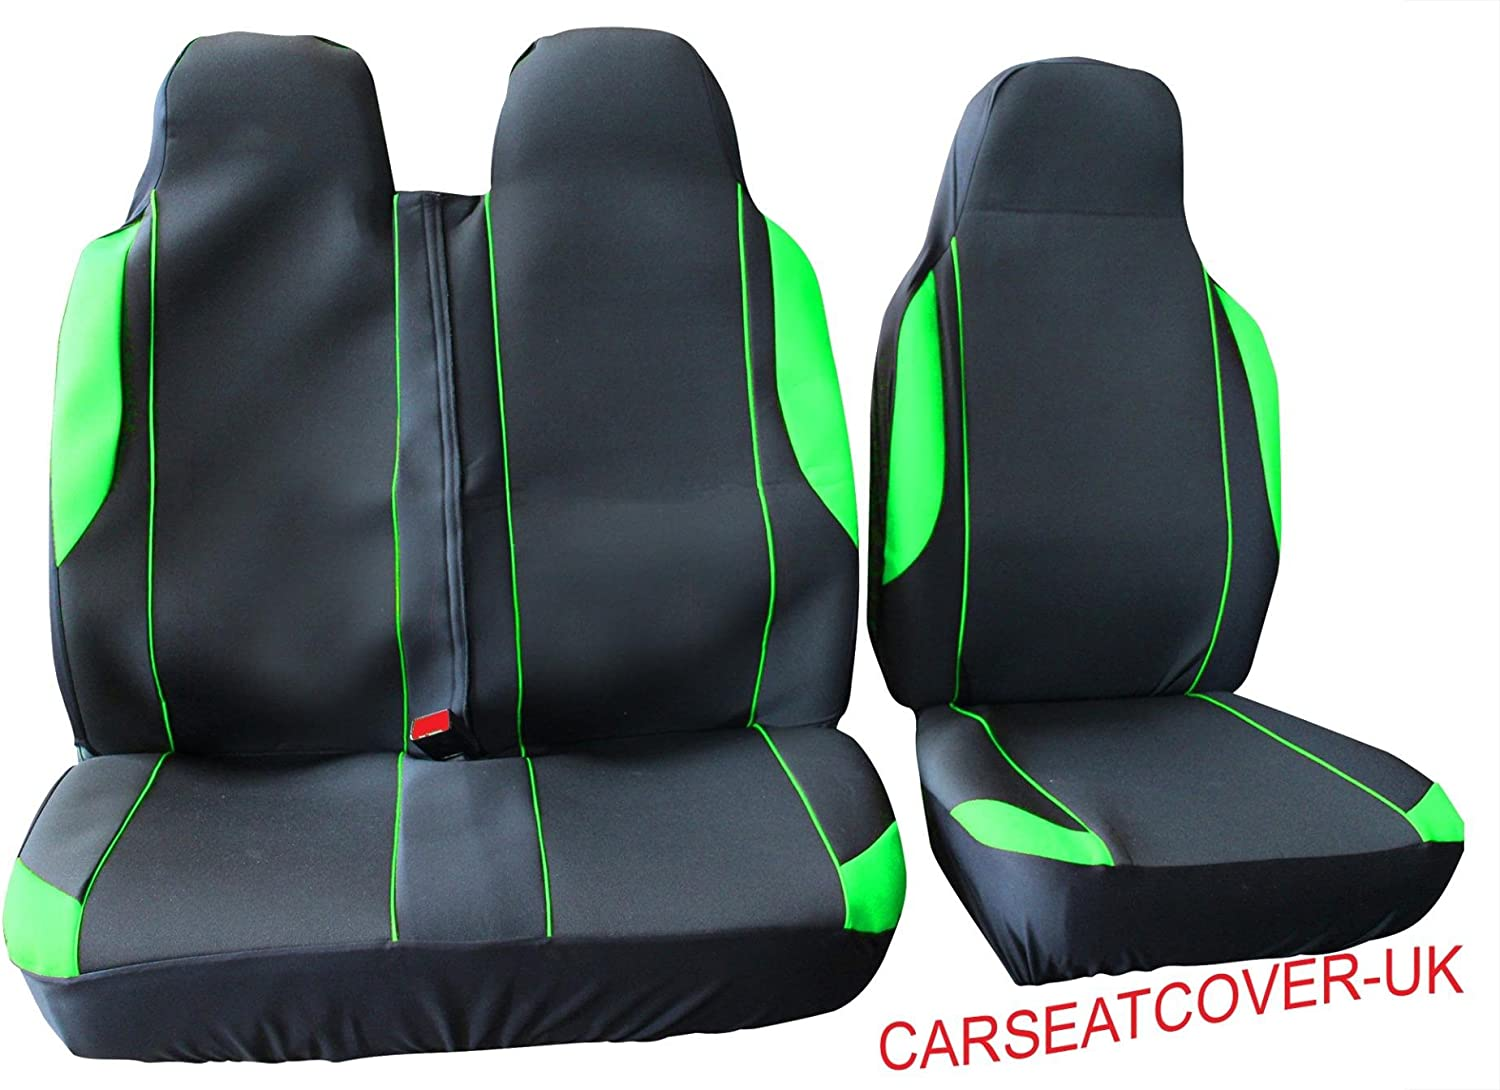 Double Carseatcover-UK VSX137 Luxury Padded Leather Look Van Seat Covers Single